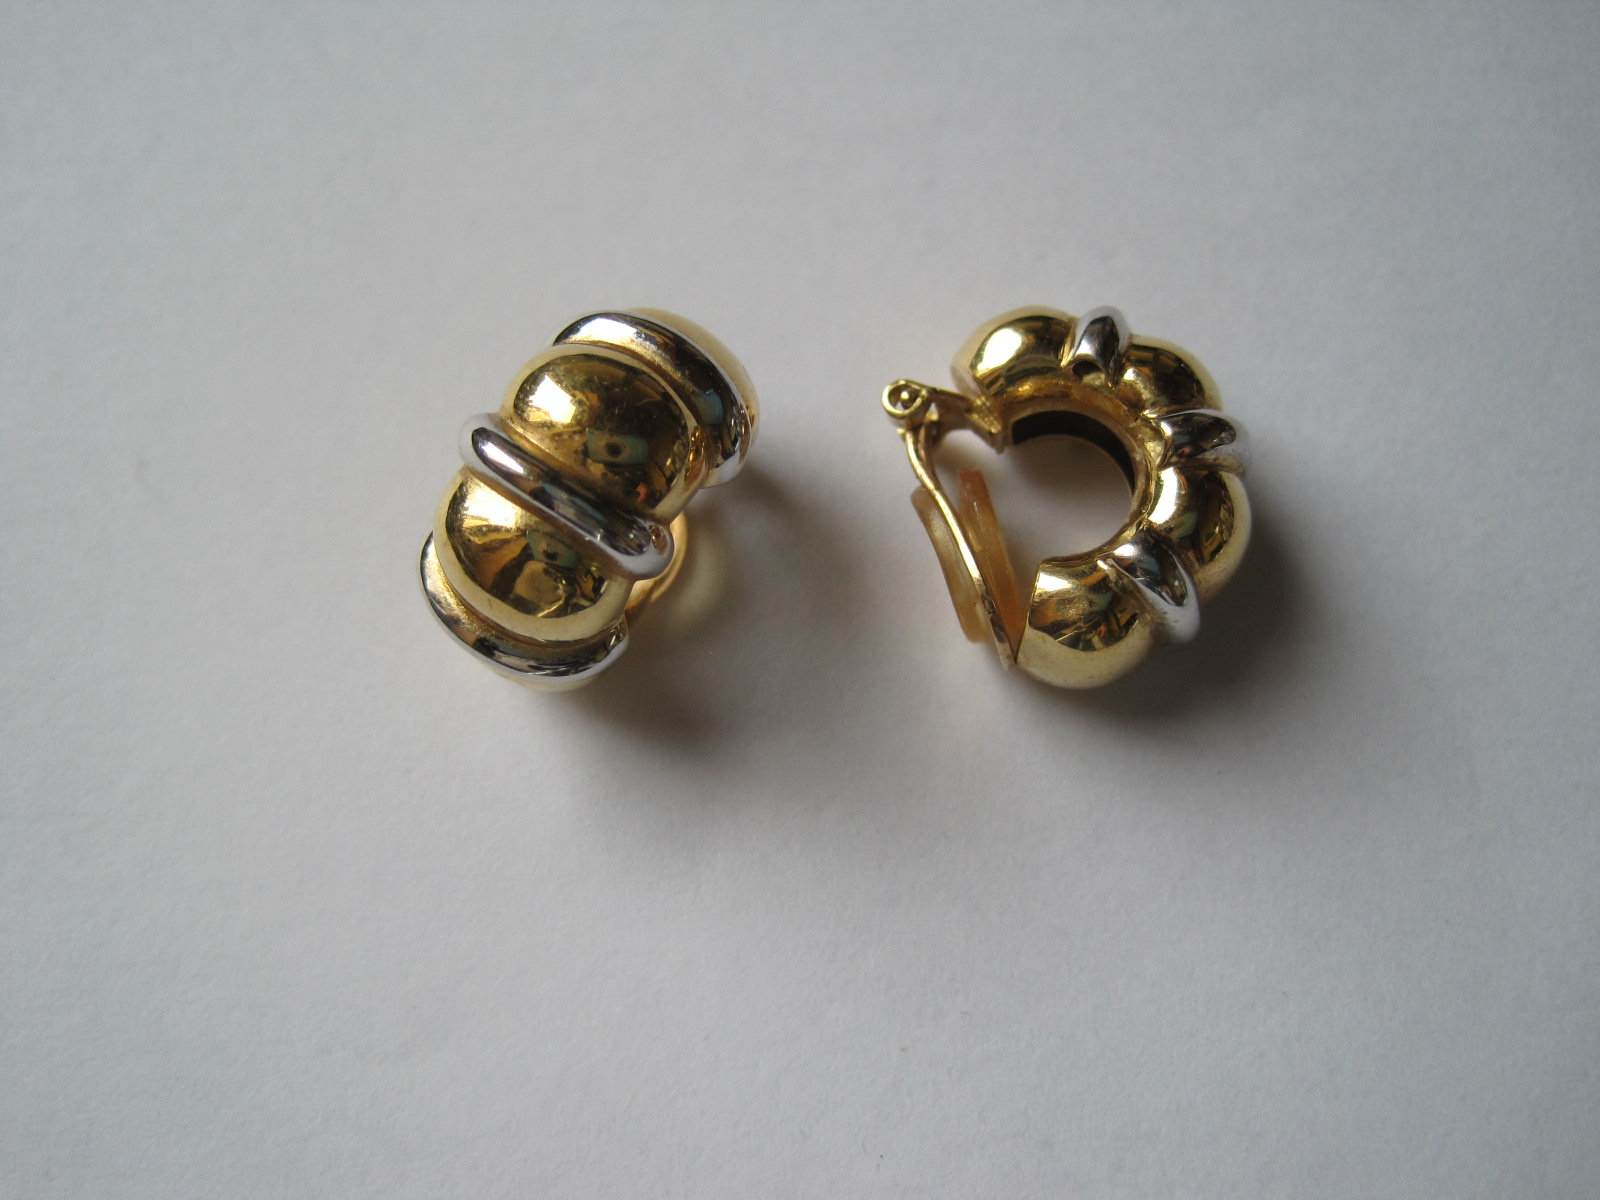 Lot 29 - Pair of 18ct yellow gold and white gold earrings, Kass-Jentgen creation in Luxembourg [...]